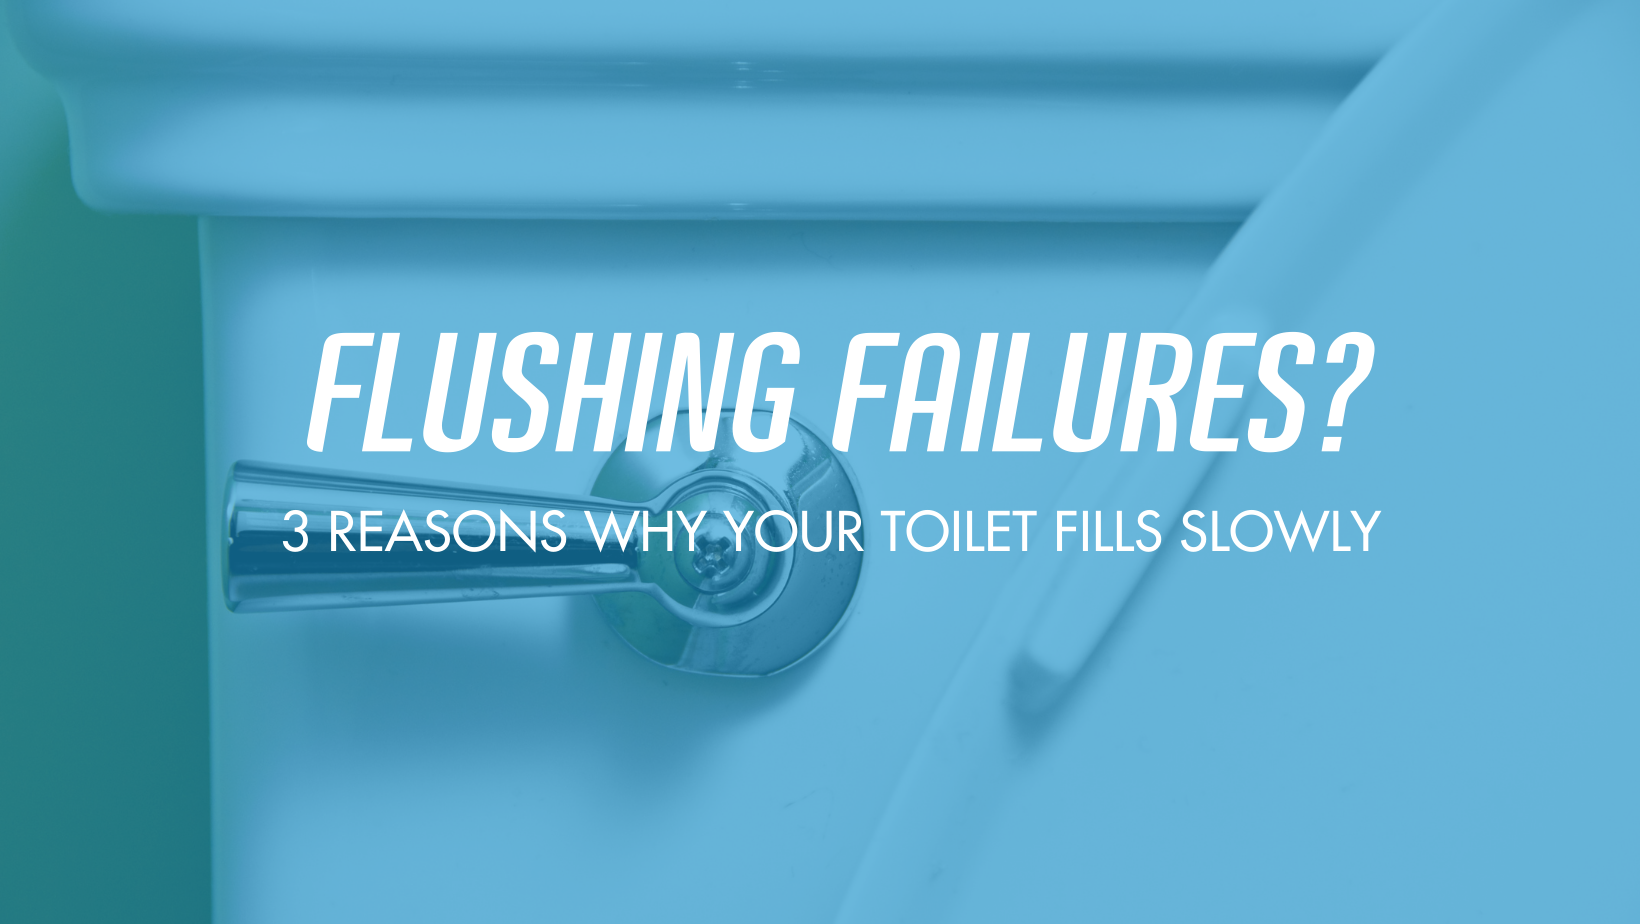 Flushing Failures? 3 Reasons Why Your Toilet Fills Slowly